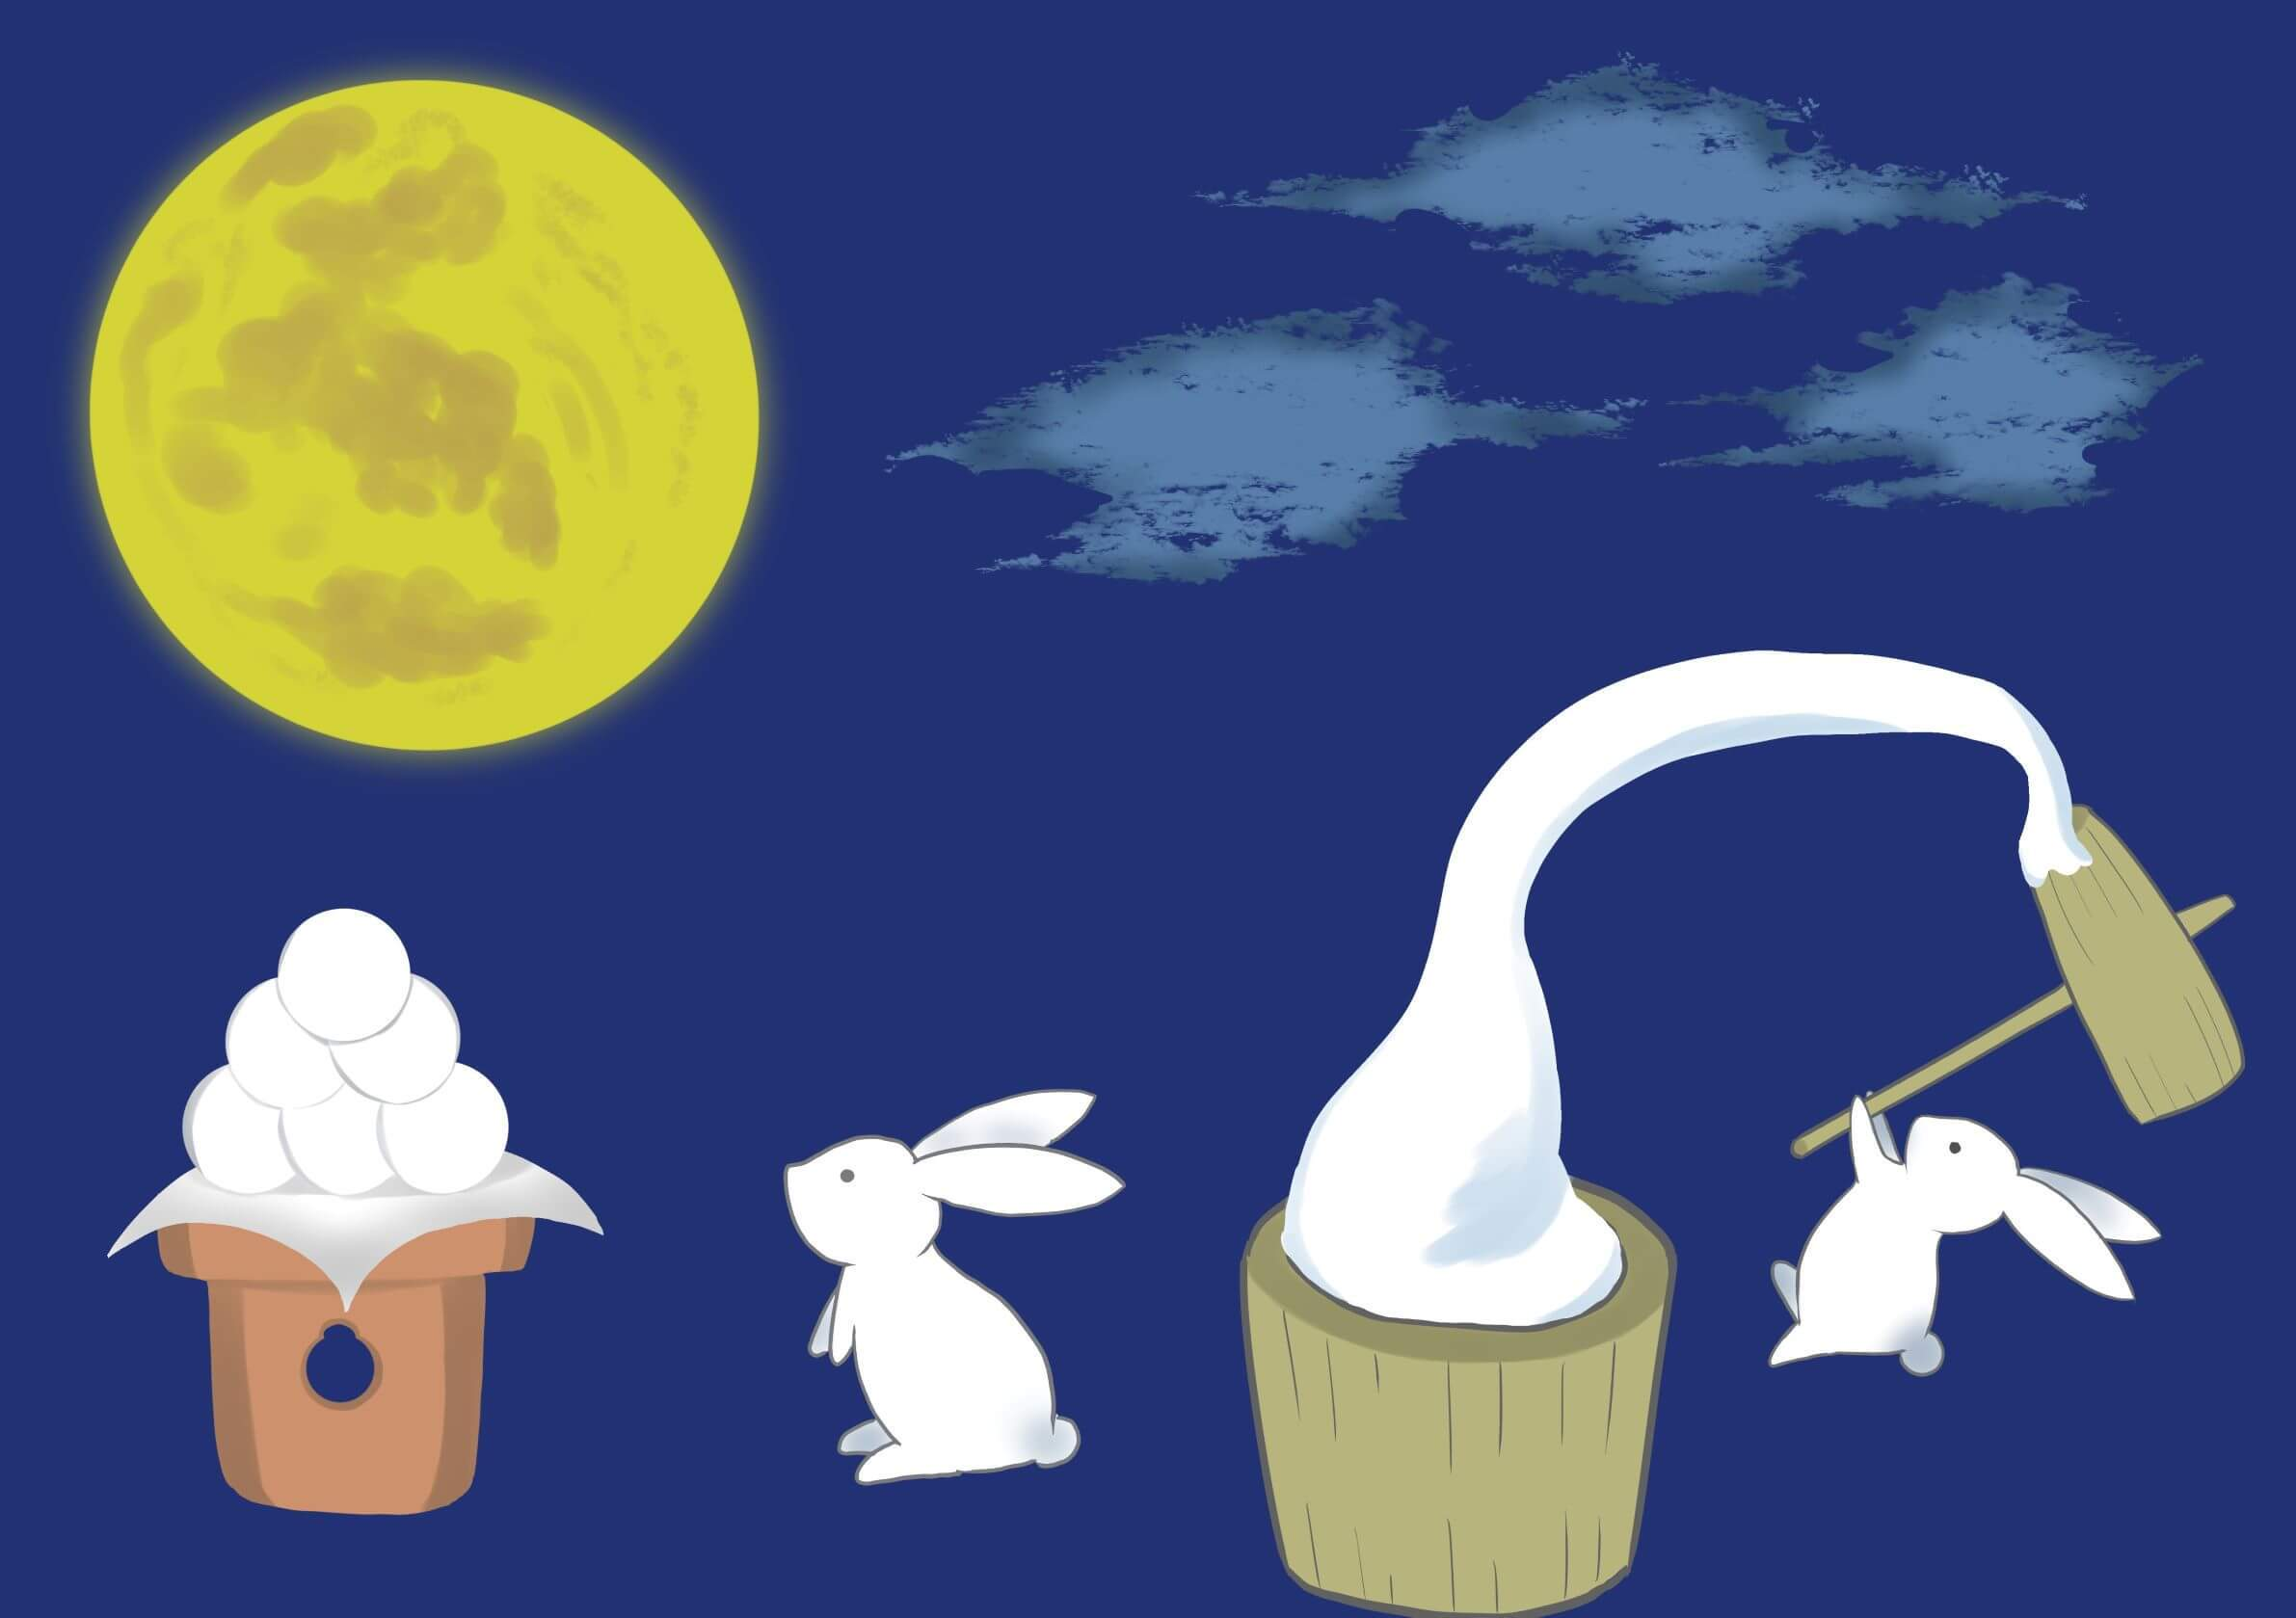 A rabbit pounding mochi and another rabbit looking at the Jugoya moon